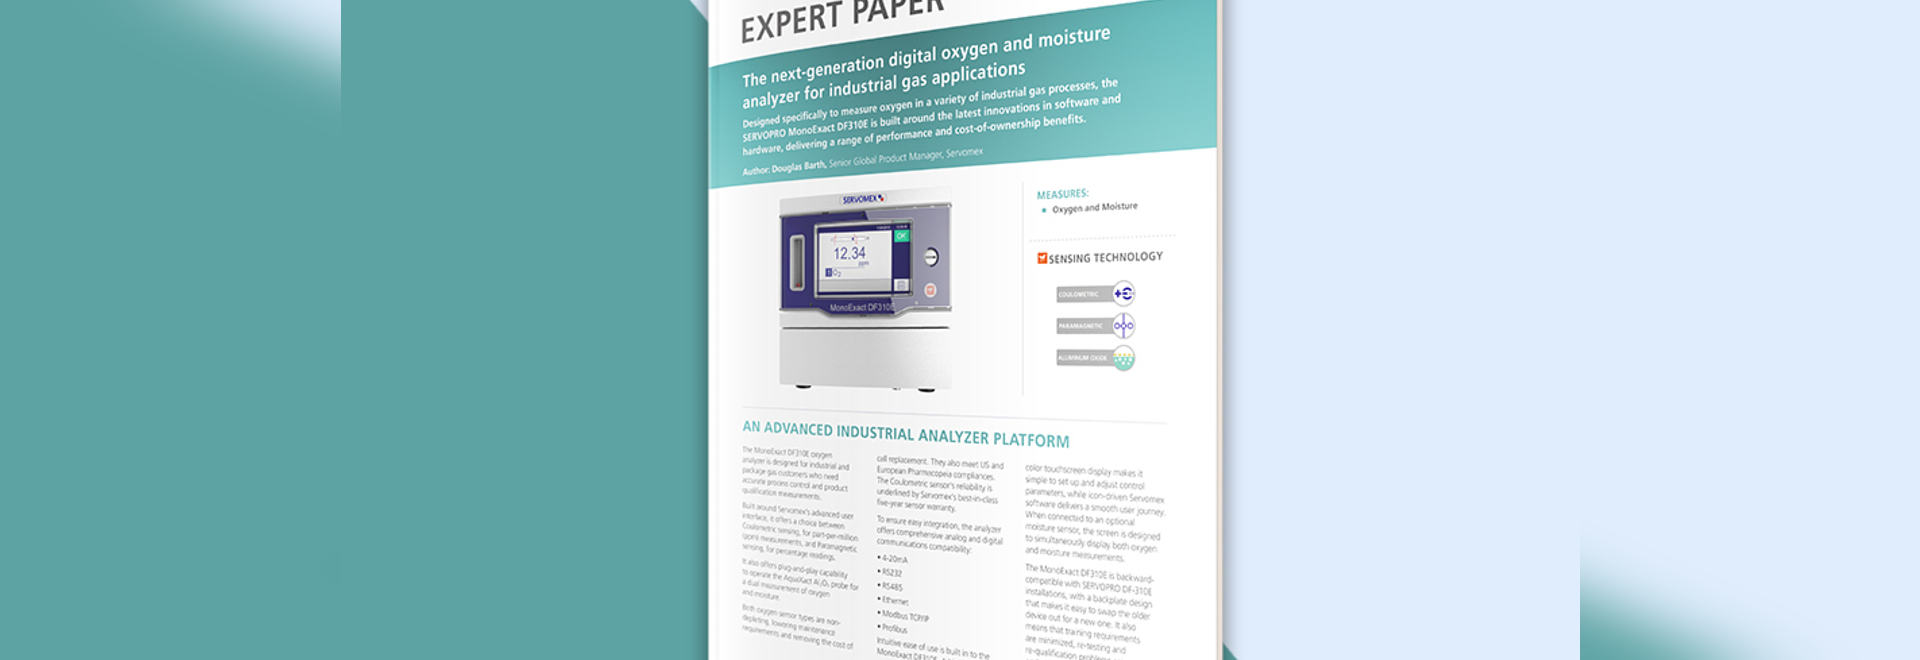 Flexible oxygen and moisture analysis for industrial gas applications – see the expert paper